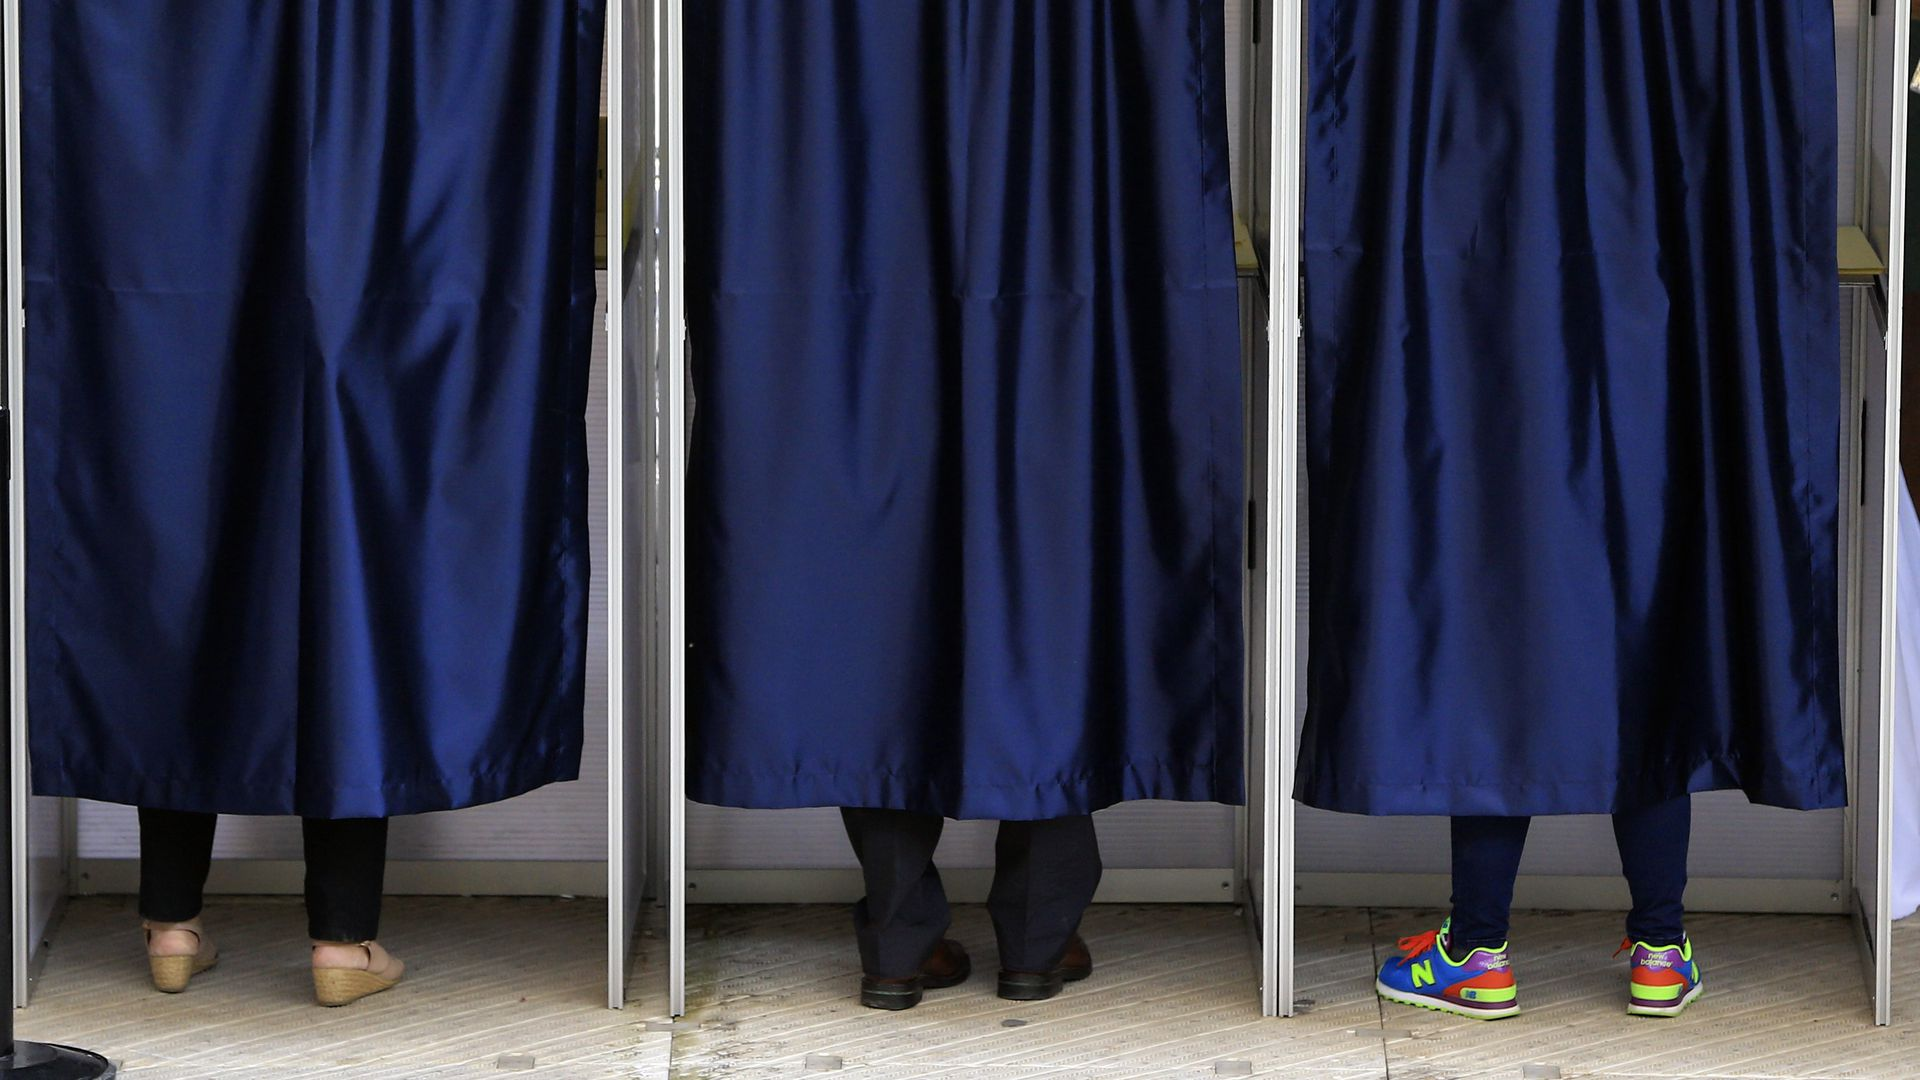 Blue curtains covering three voting booths. You can see the shoes of three different people at the bottom of each curtain